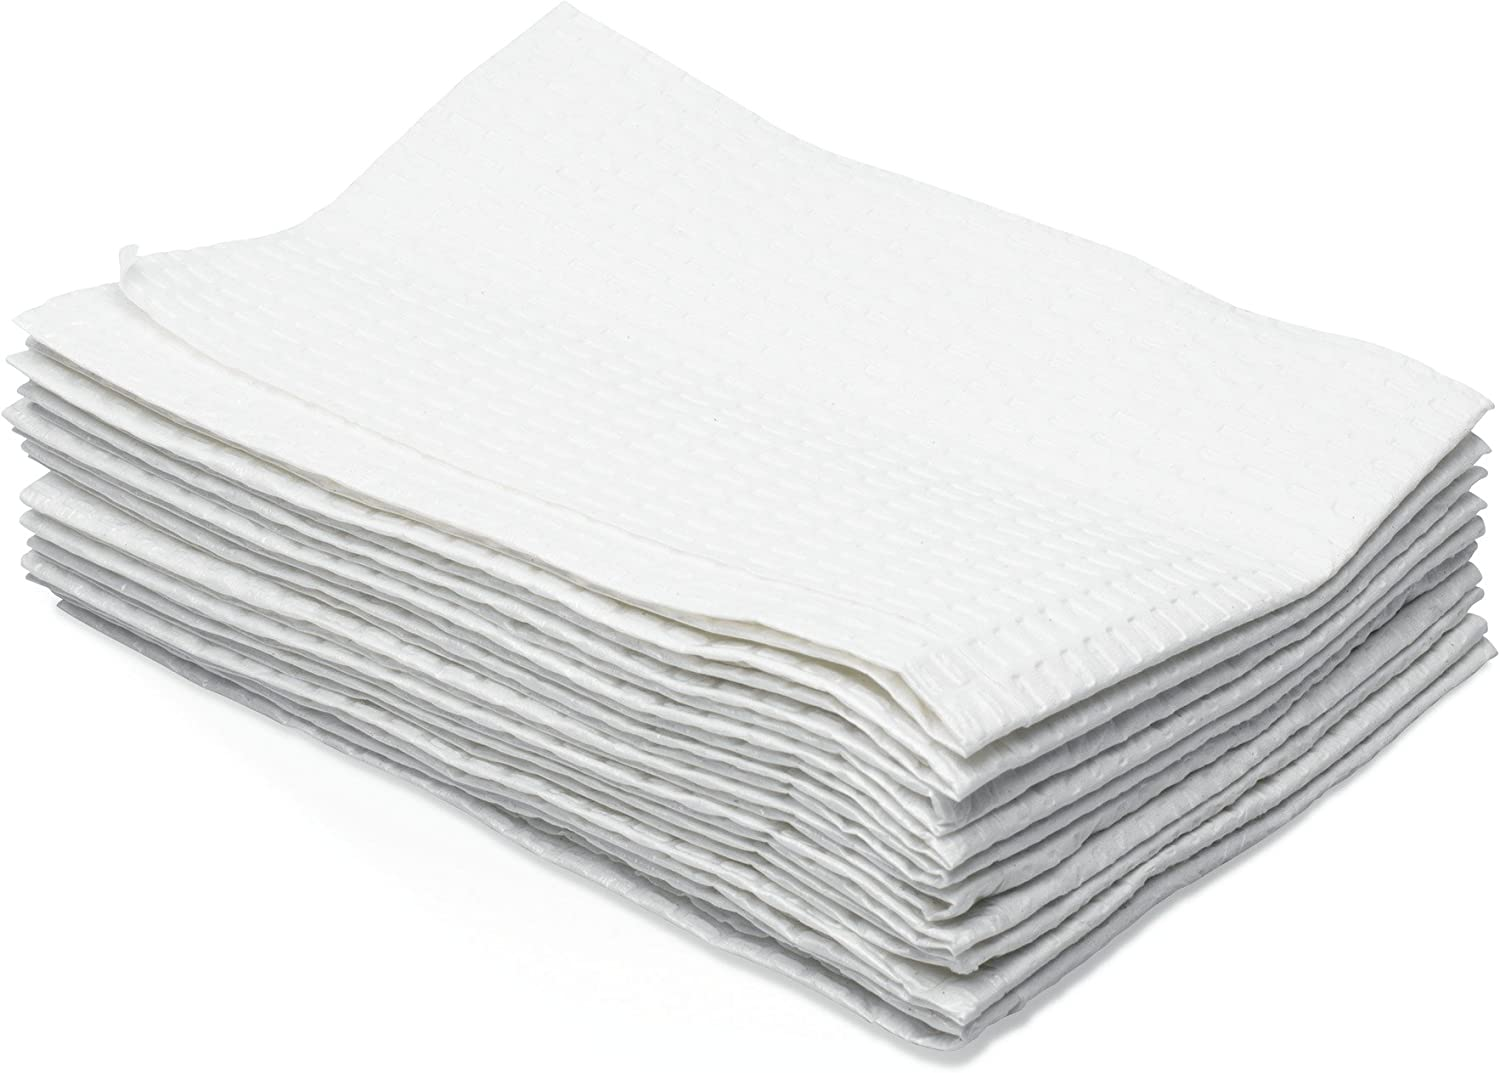 Foundations Worldwide Sanitary Disposable Changing Station Liners, NonWaterproof, White